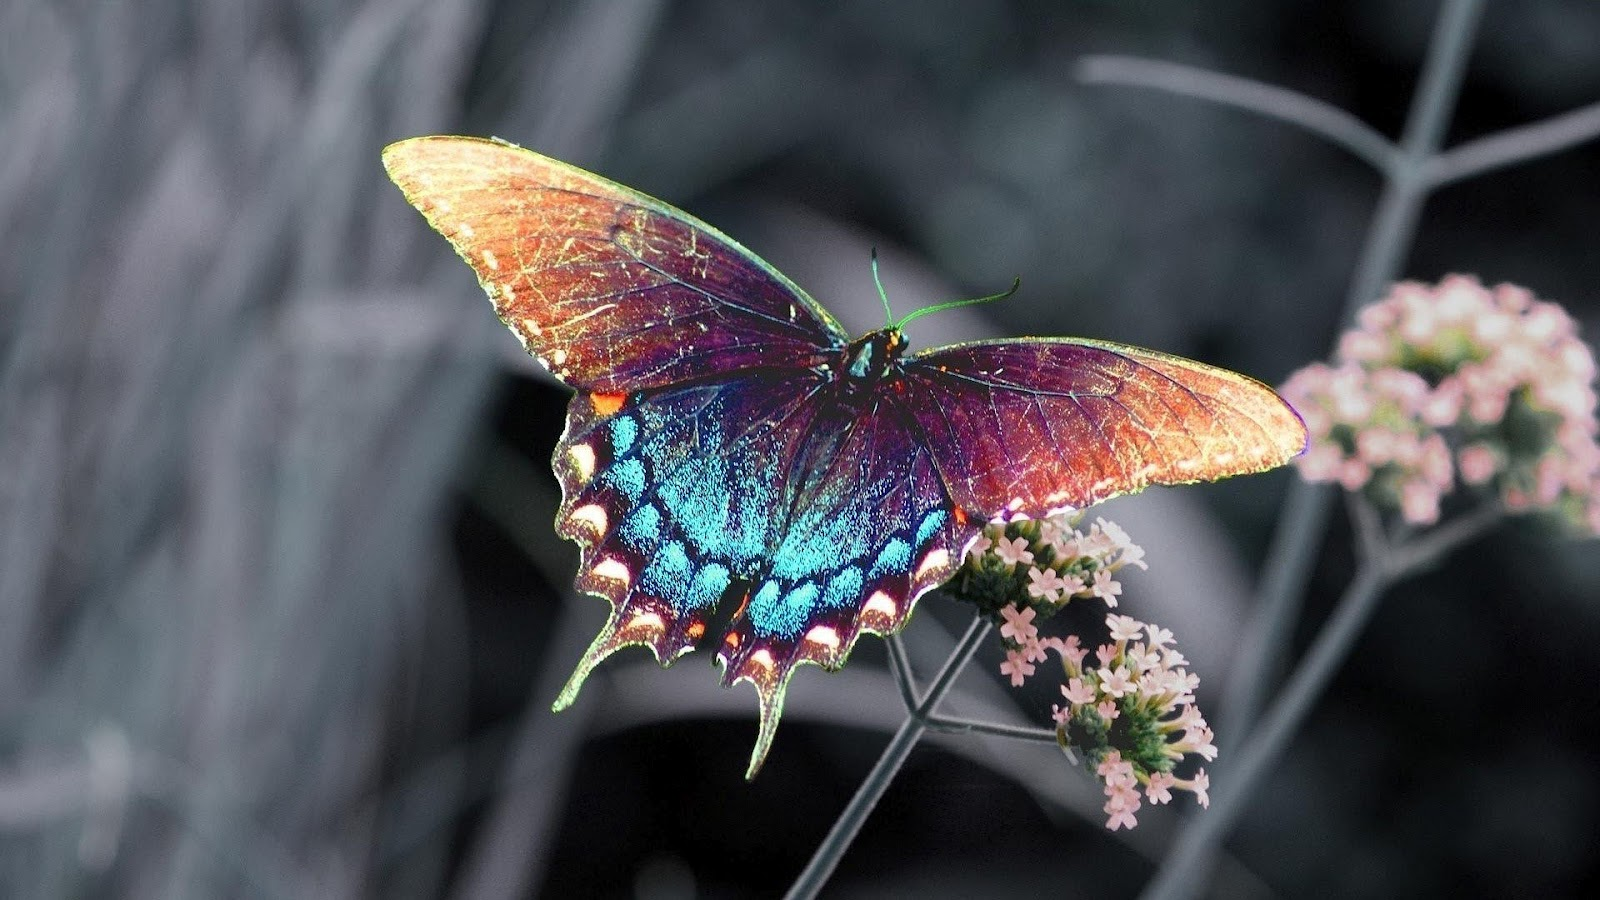 HD animal wallpaper with a brown blue butterfly sitting on a branch 1600x900